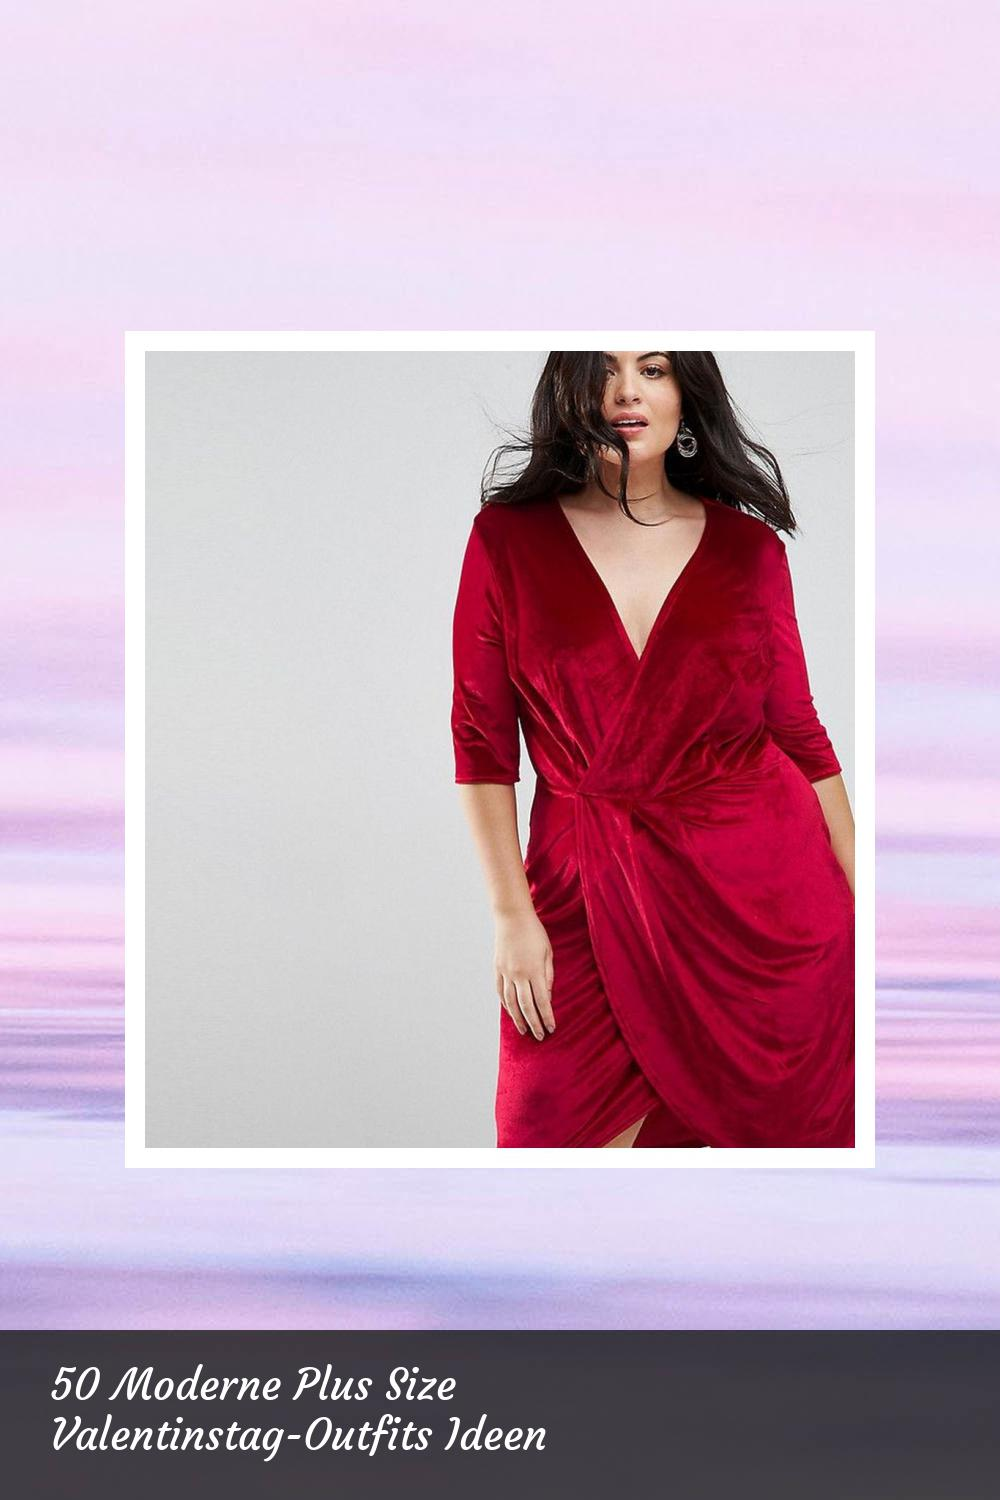 50 Moderne Plus Size Valentinstag-Outfits Ideen 15